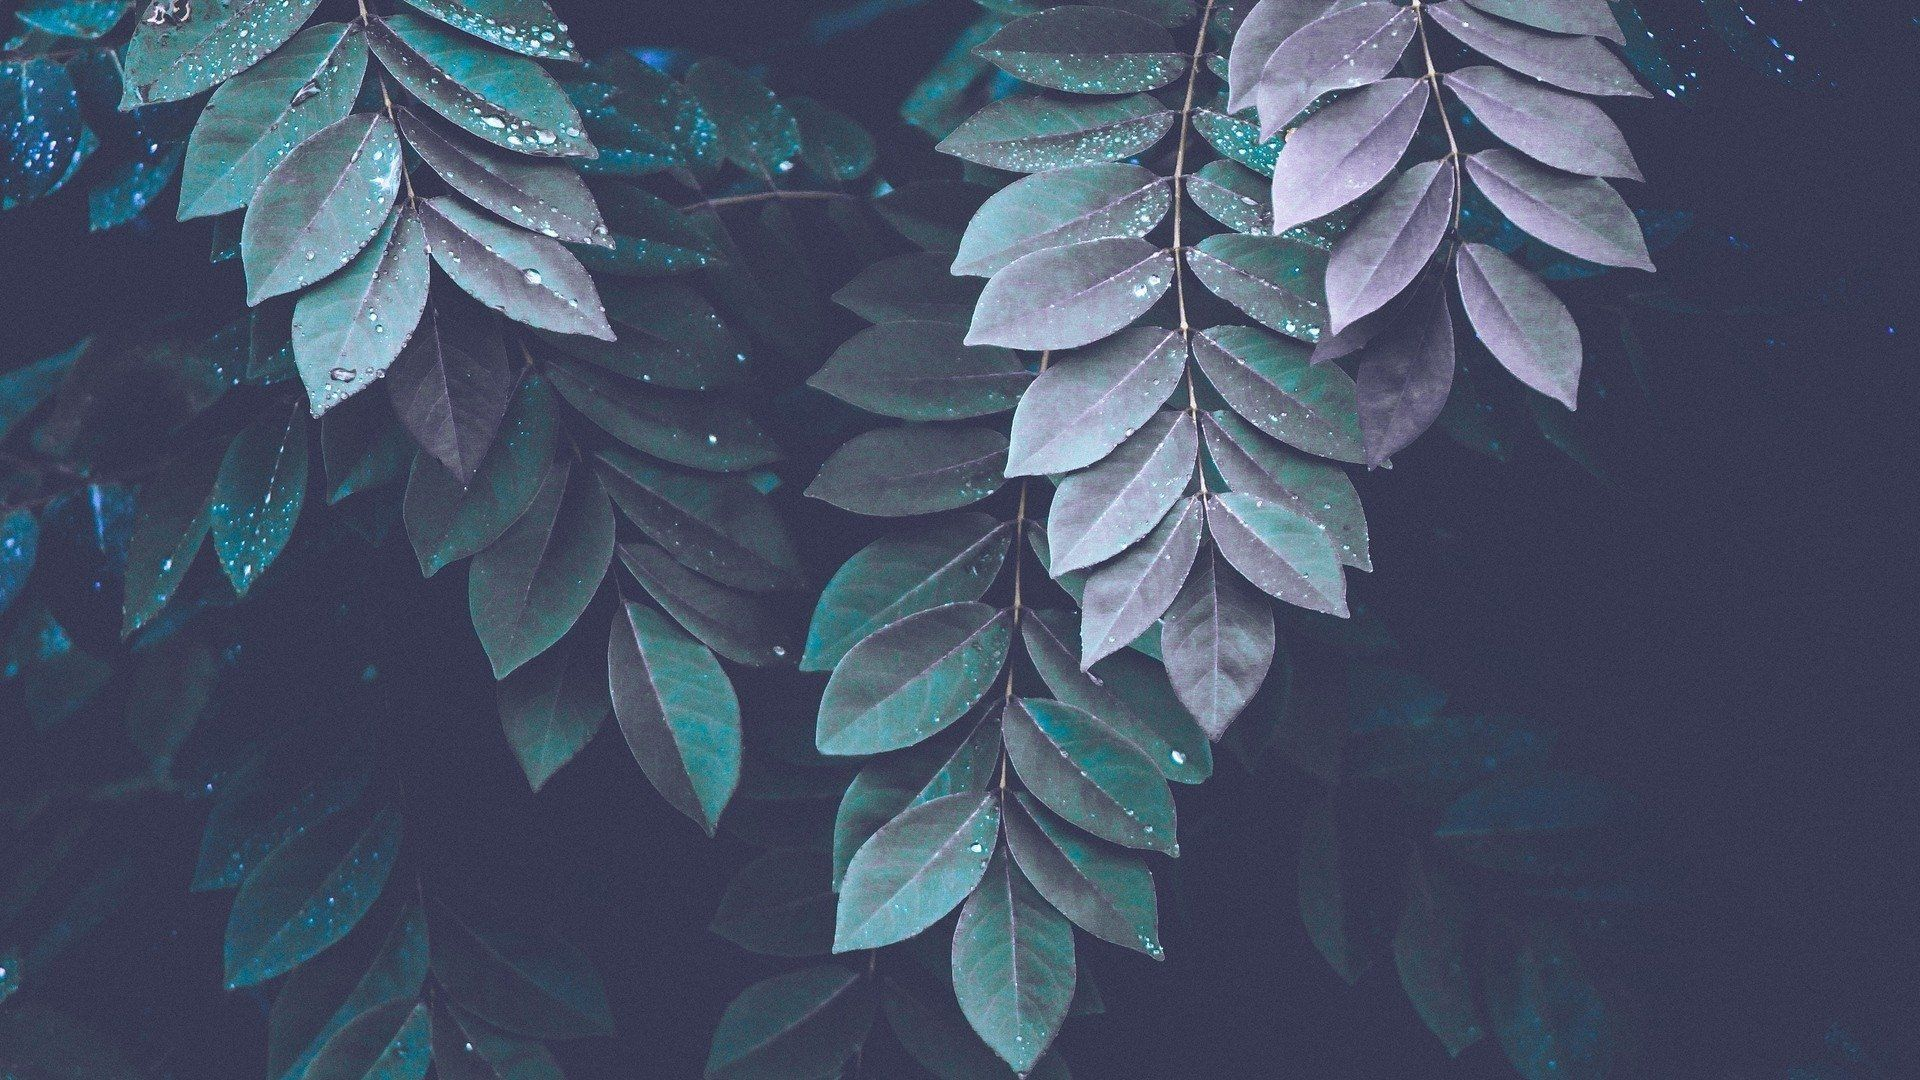 Plants Aesthetic Wallpapers - Wallpaper Cave